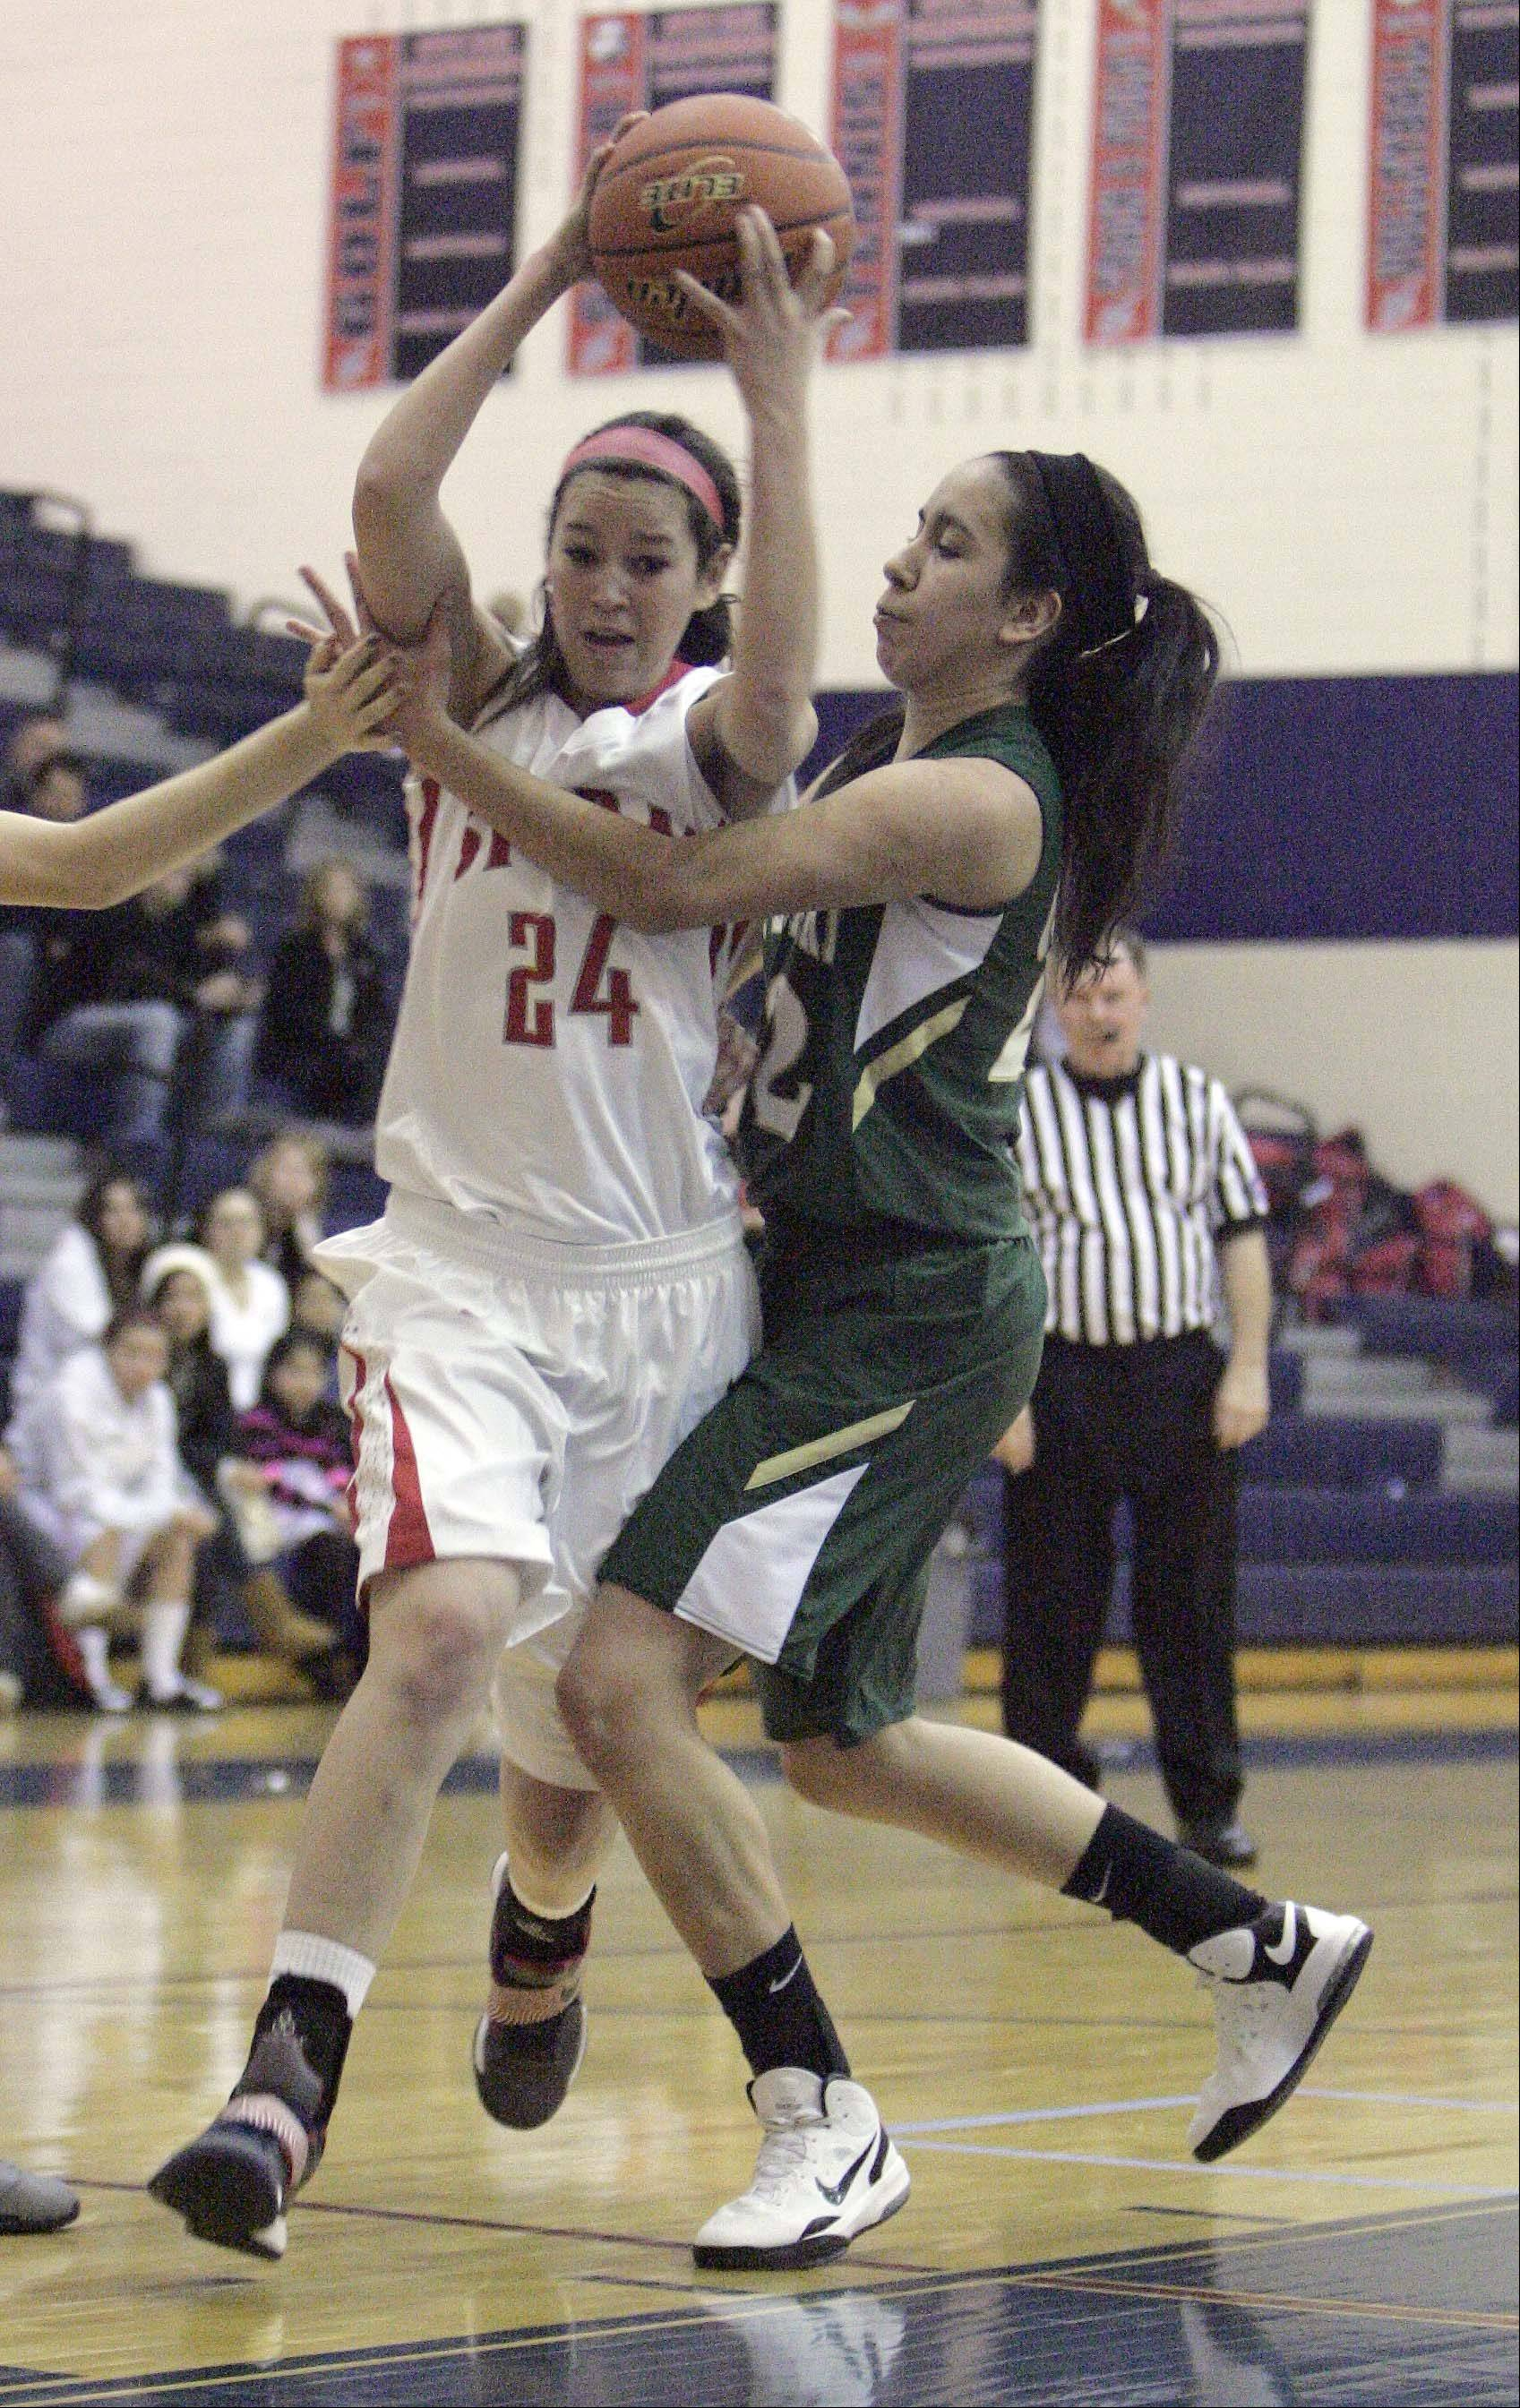 South Elgin's Kennede Miller (24) goes to the hoop as St. Edward's Clarissa Ramos defends Saturday at South Elgin.